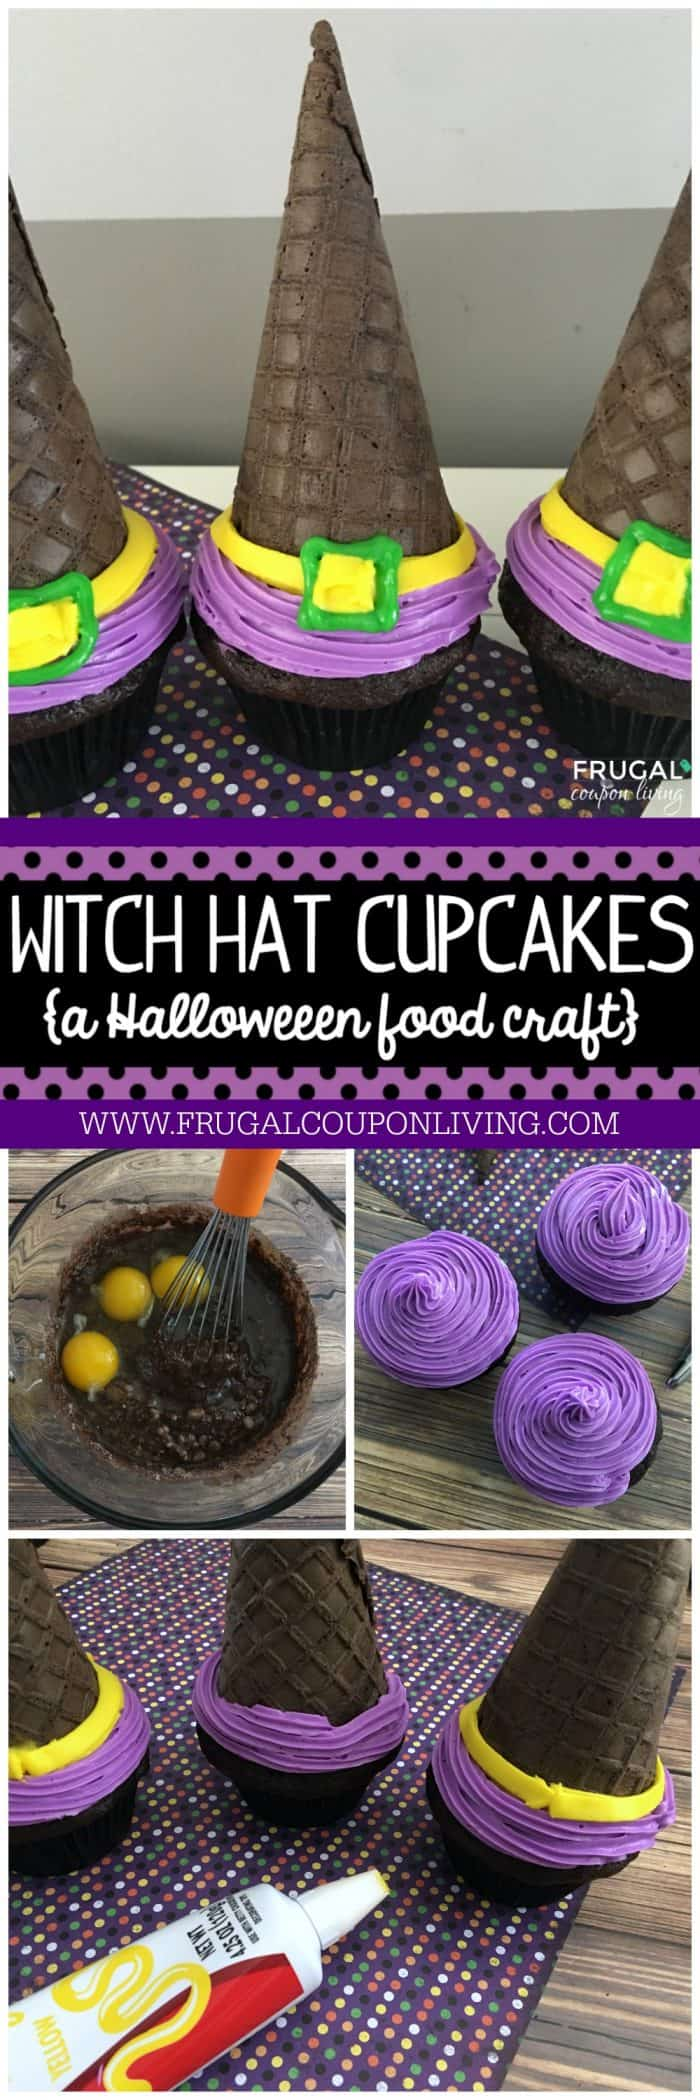 witch-hat-cupcakes-frugal-coupon-living-long